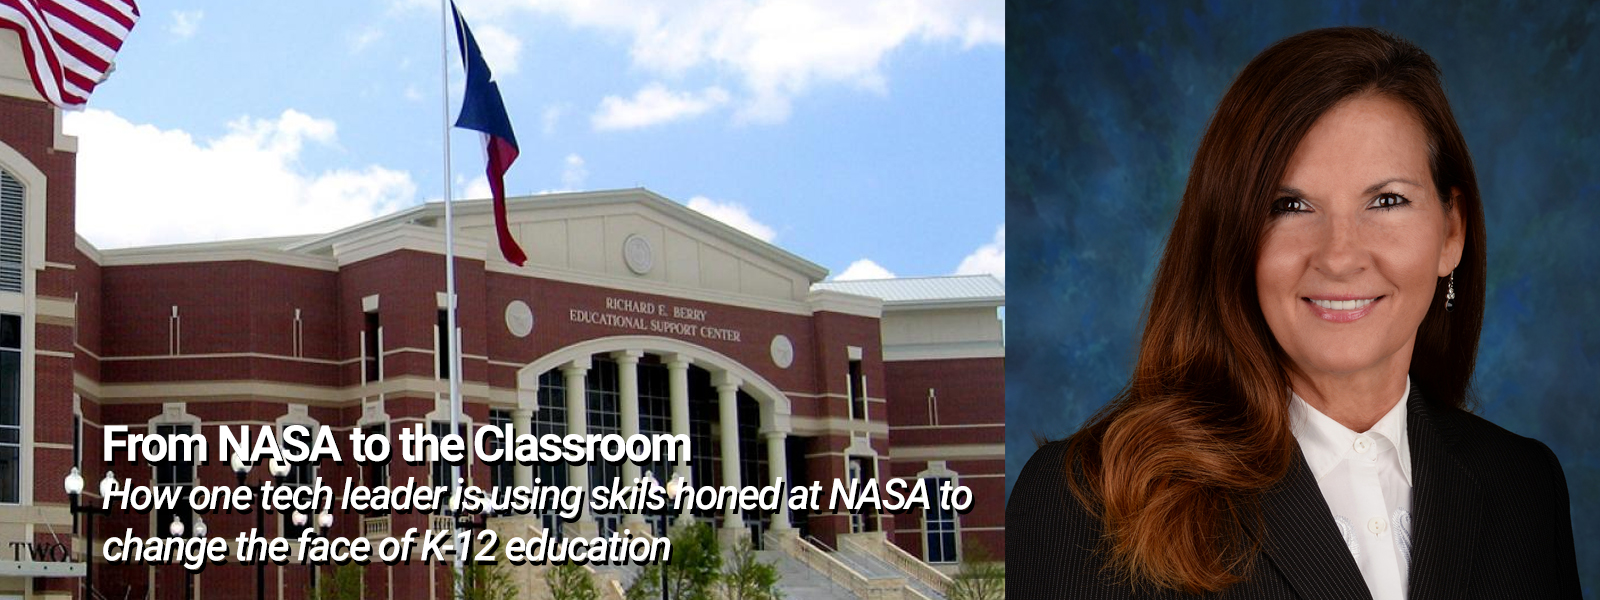 From NASA to the Classroom